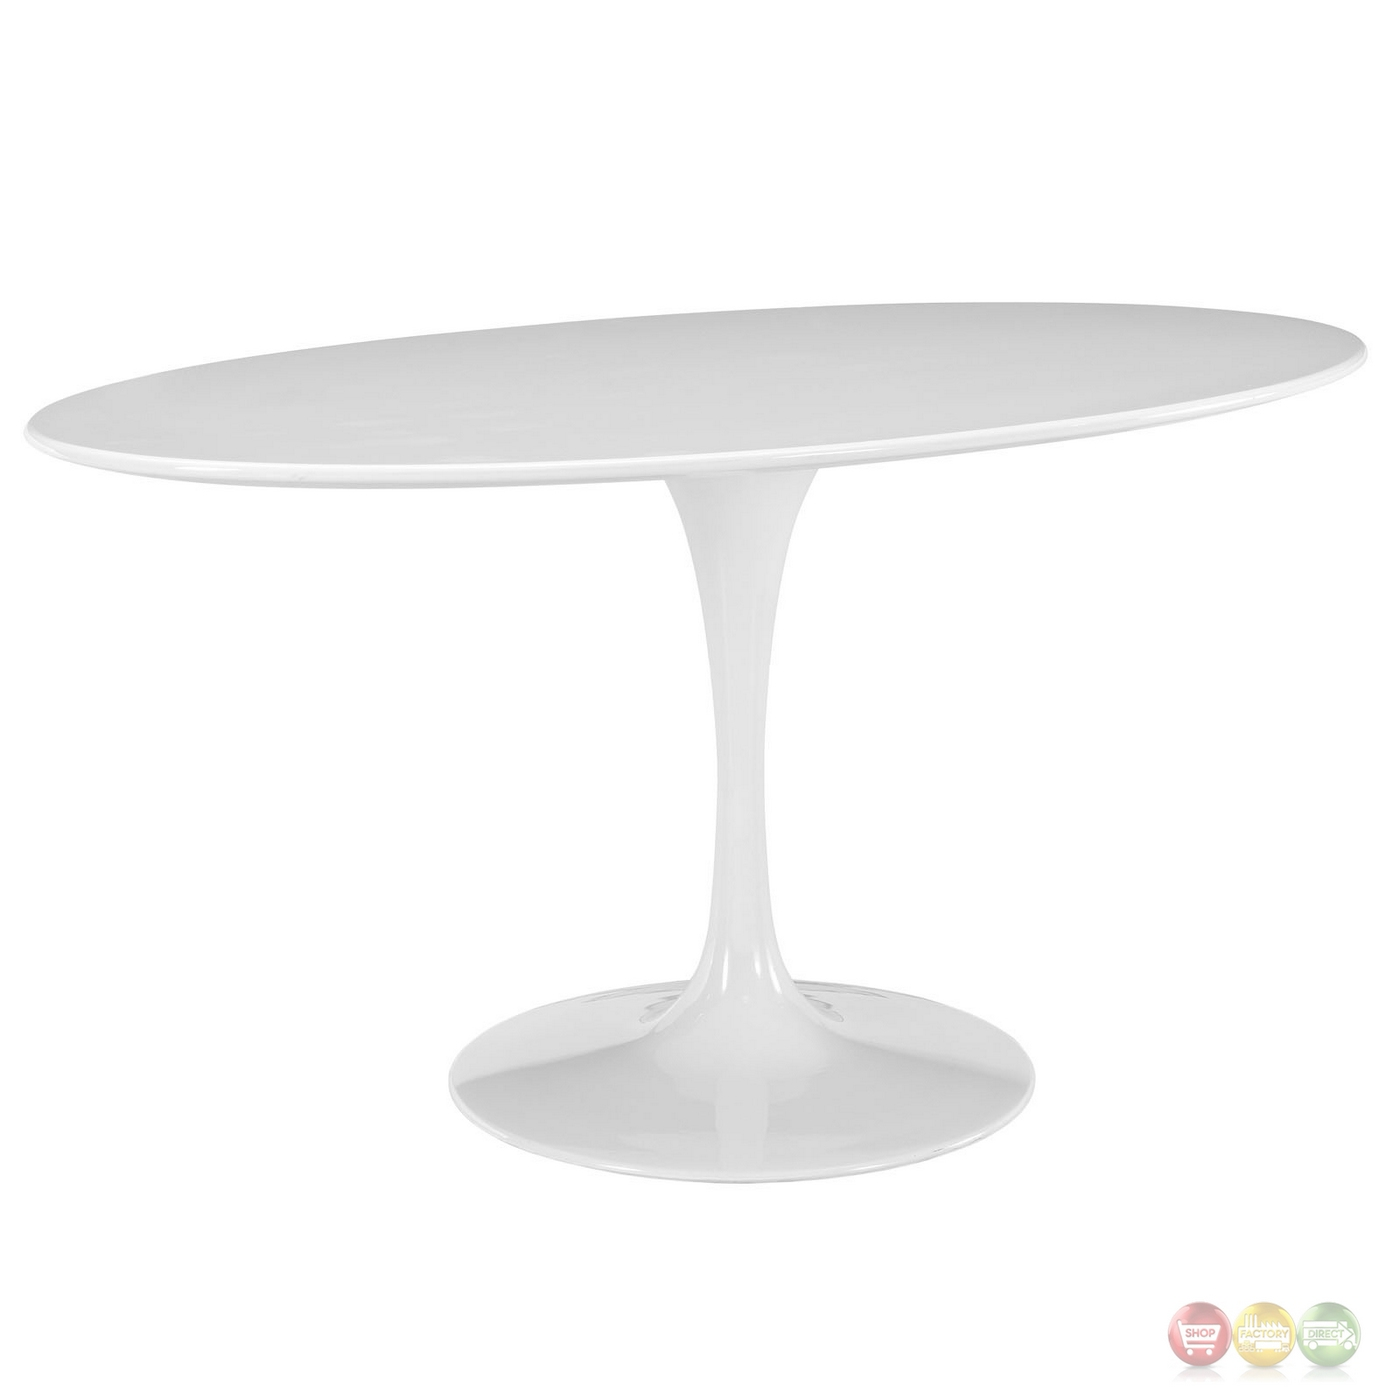 Lippa 60 Quot Oval Shaped Wood Top Dining Table W Lacquered